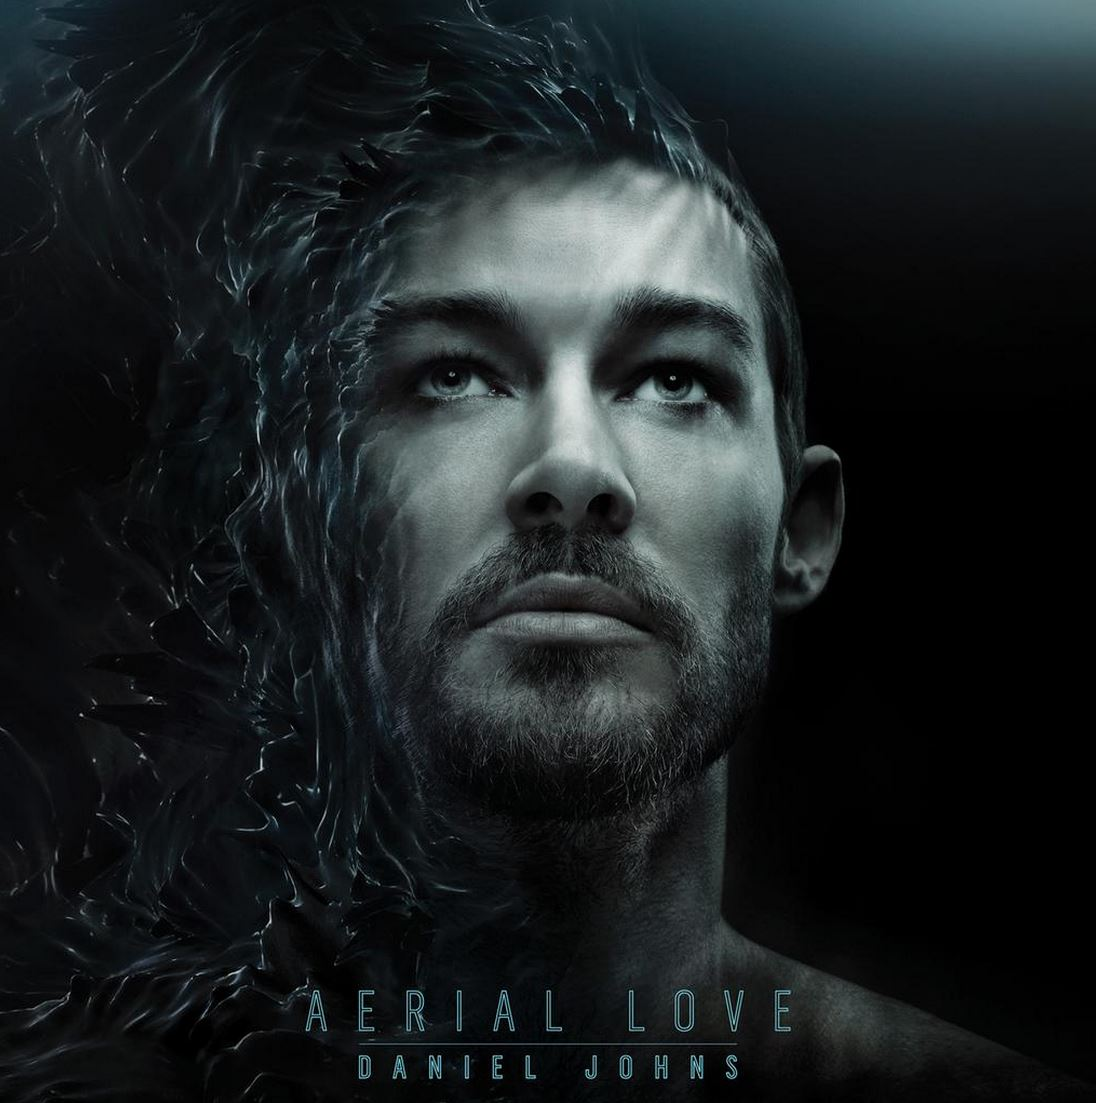 Daniel Johns - Aerial Love via Twitter